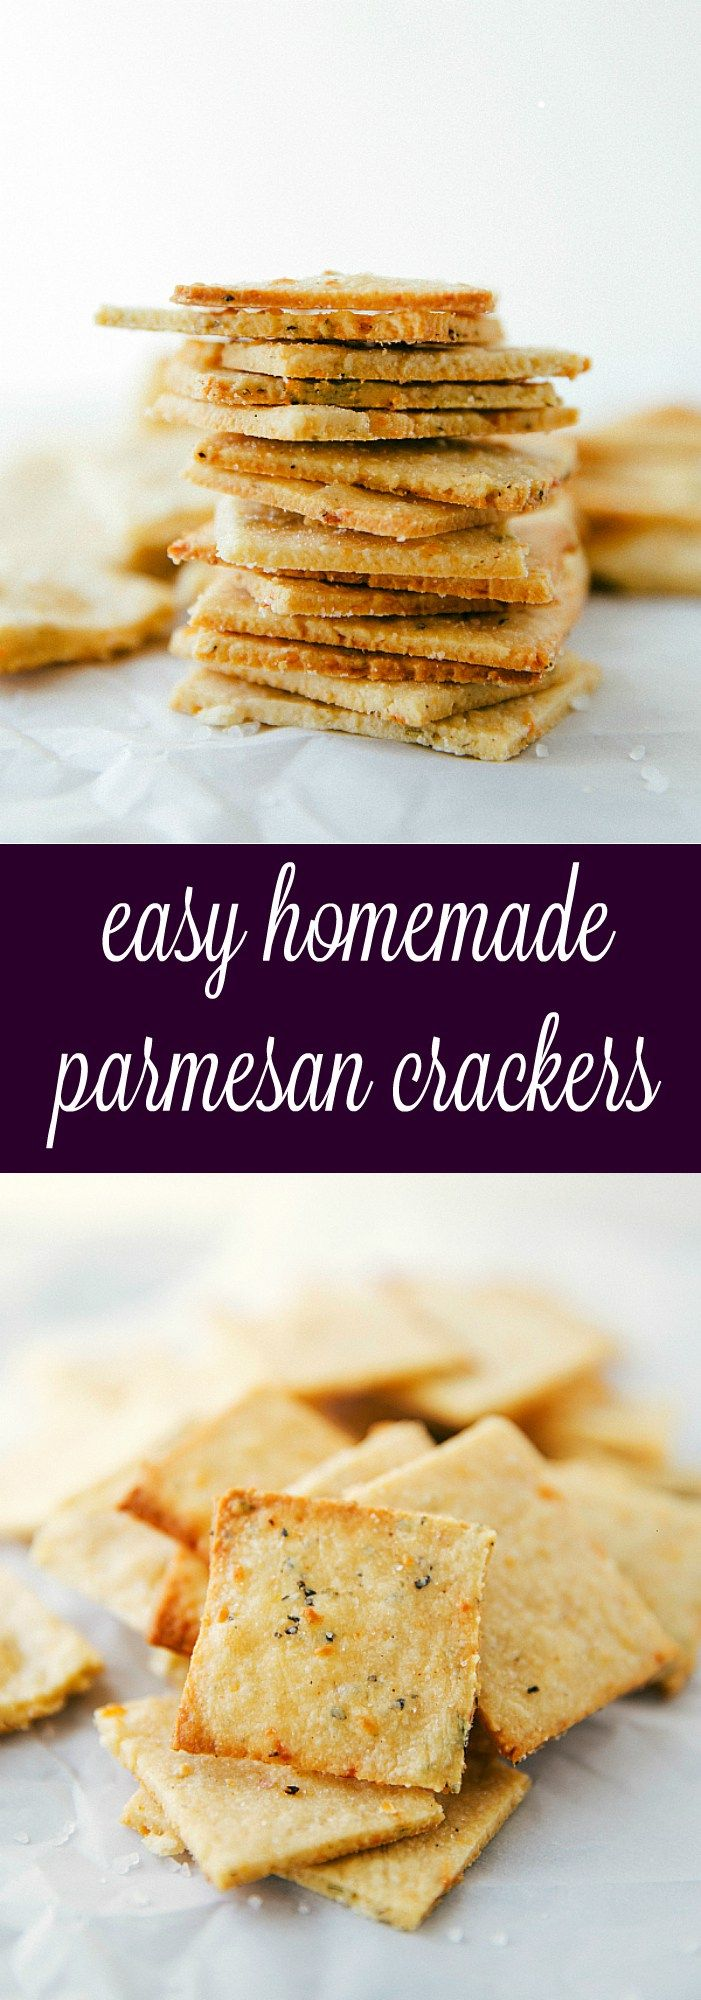 Easy Parmesan Crackers - Simple and quick (15 minutes to make) homemade parmesan-herb crackers. Perfect for entertaining and snacking!